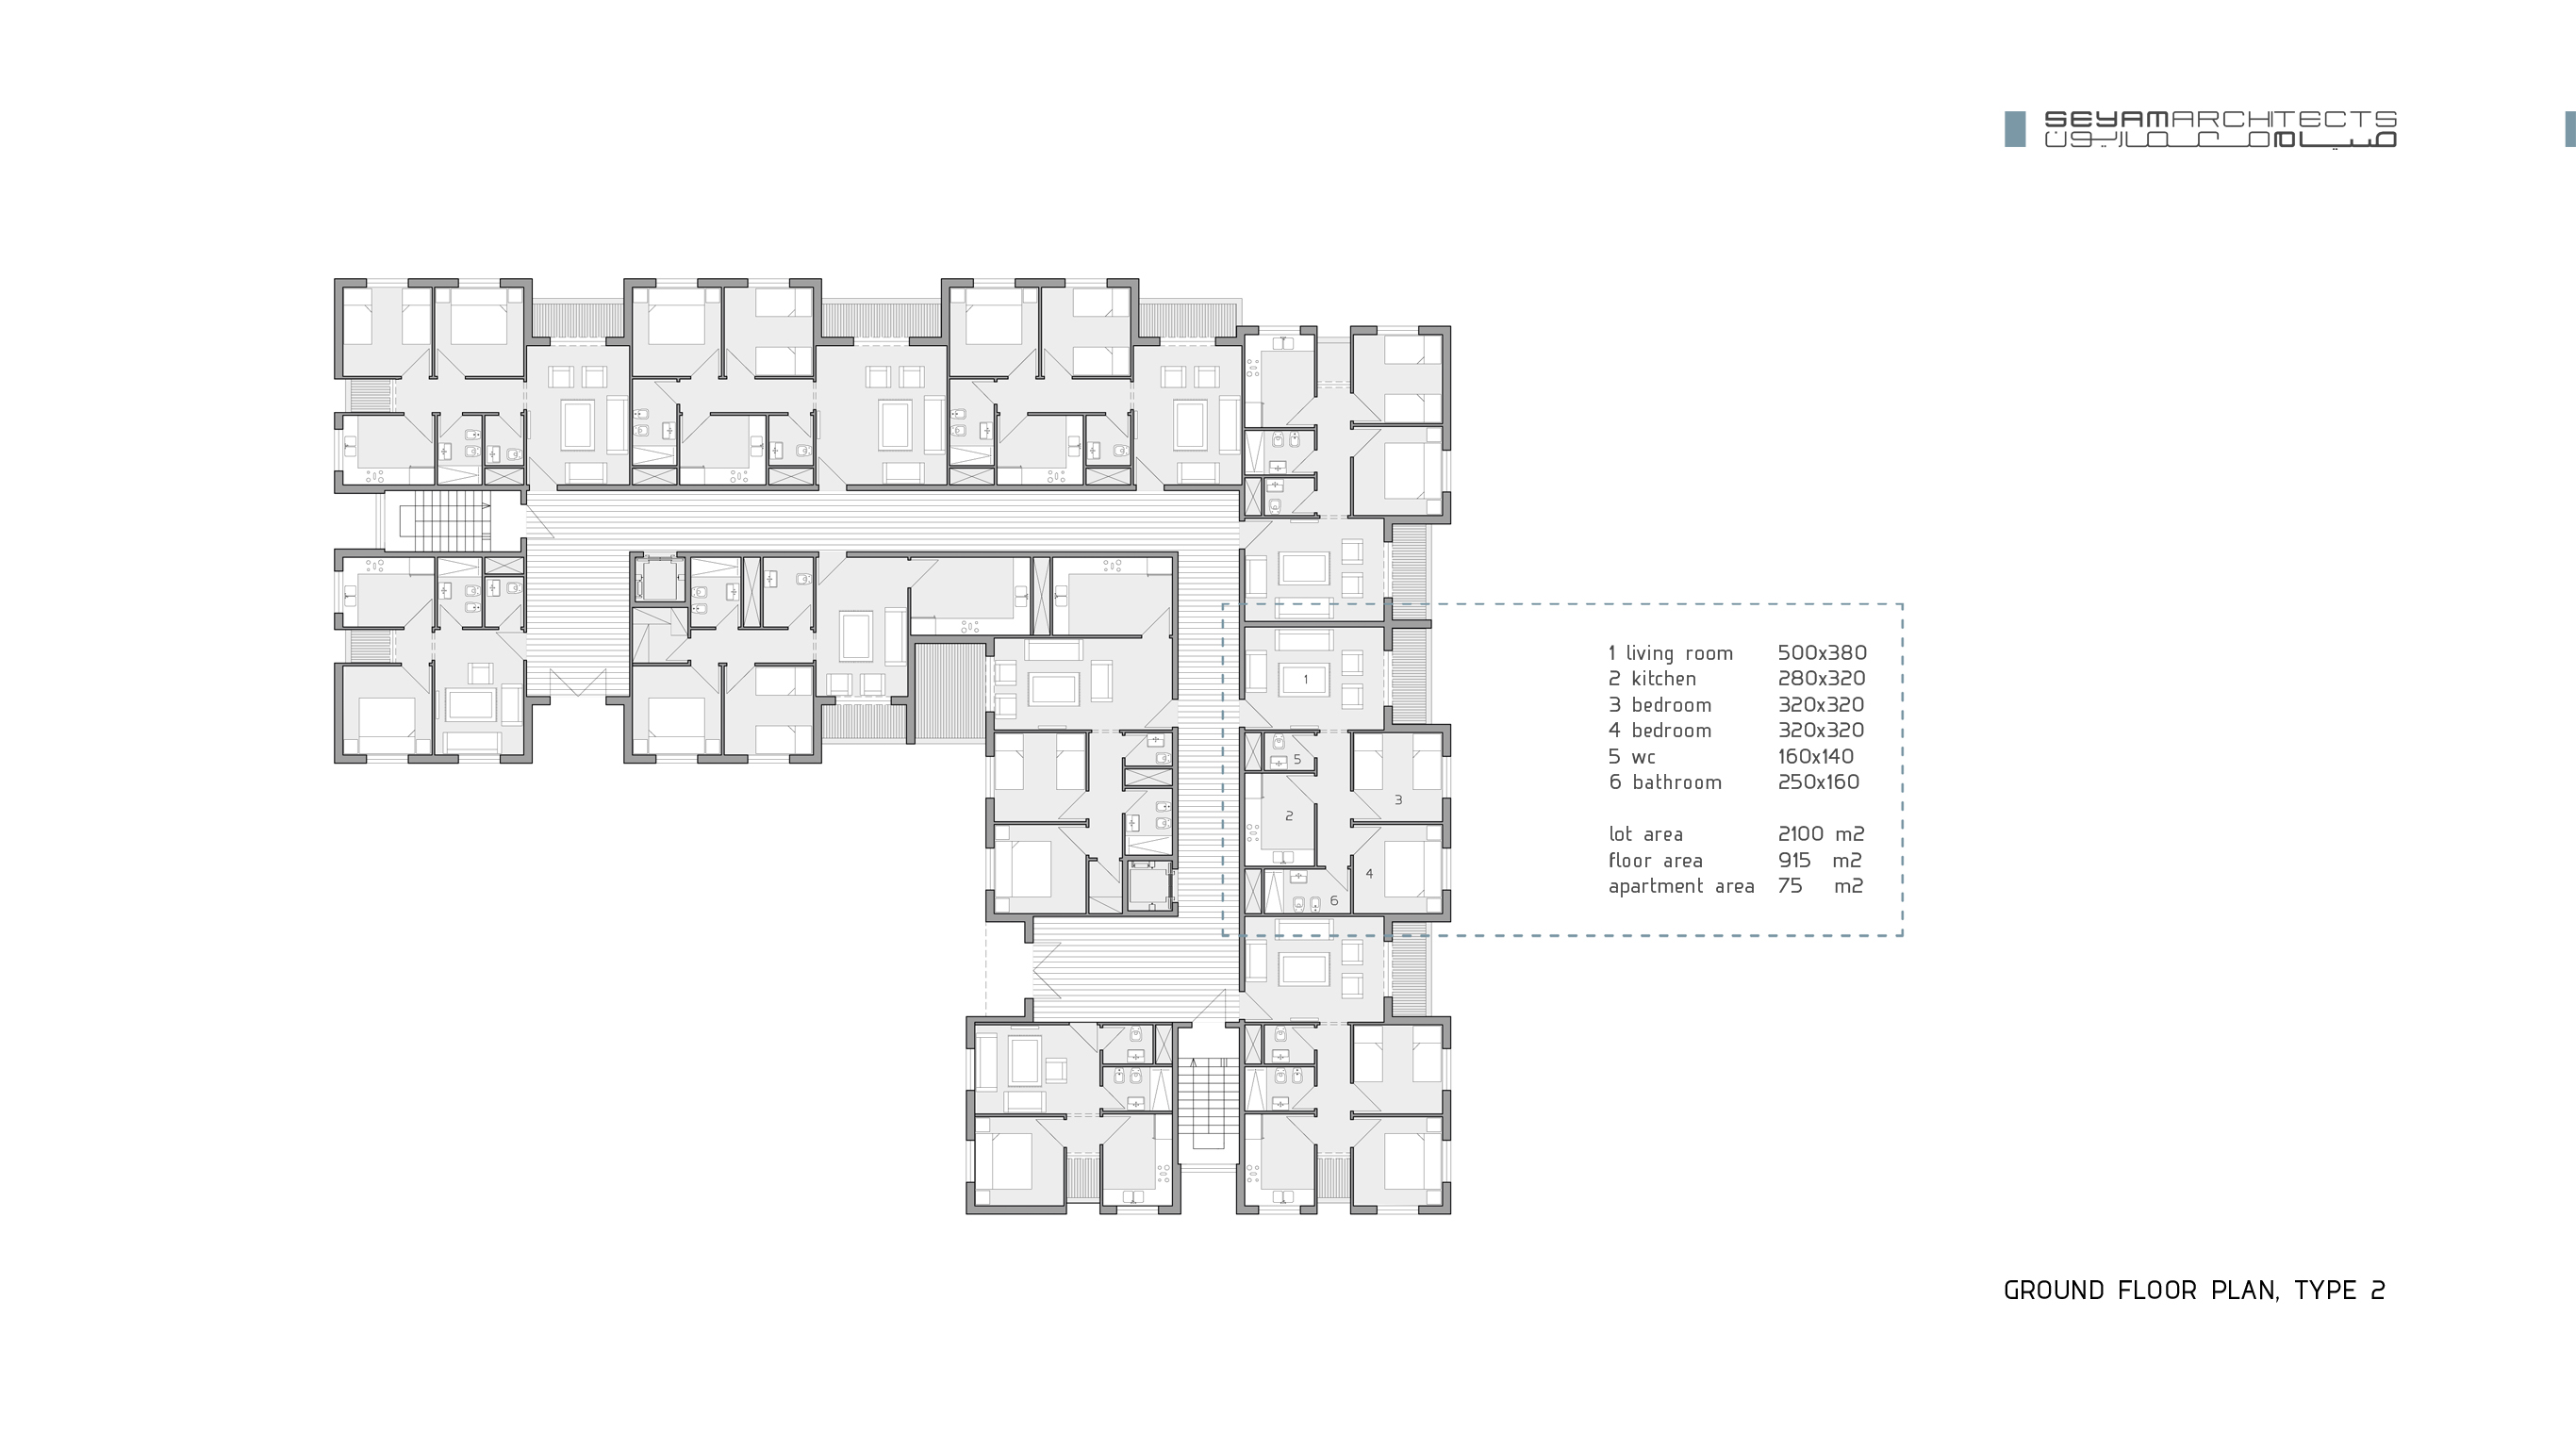 08 ground floor plan, type 2